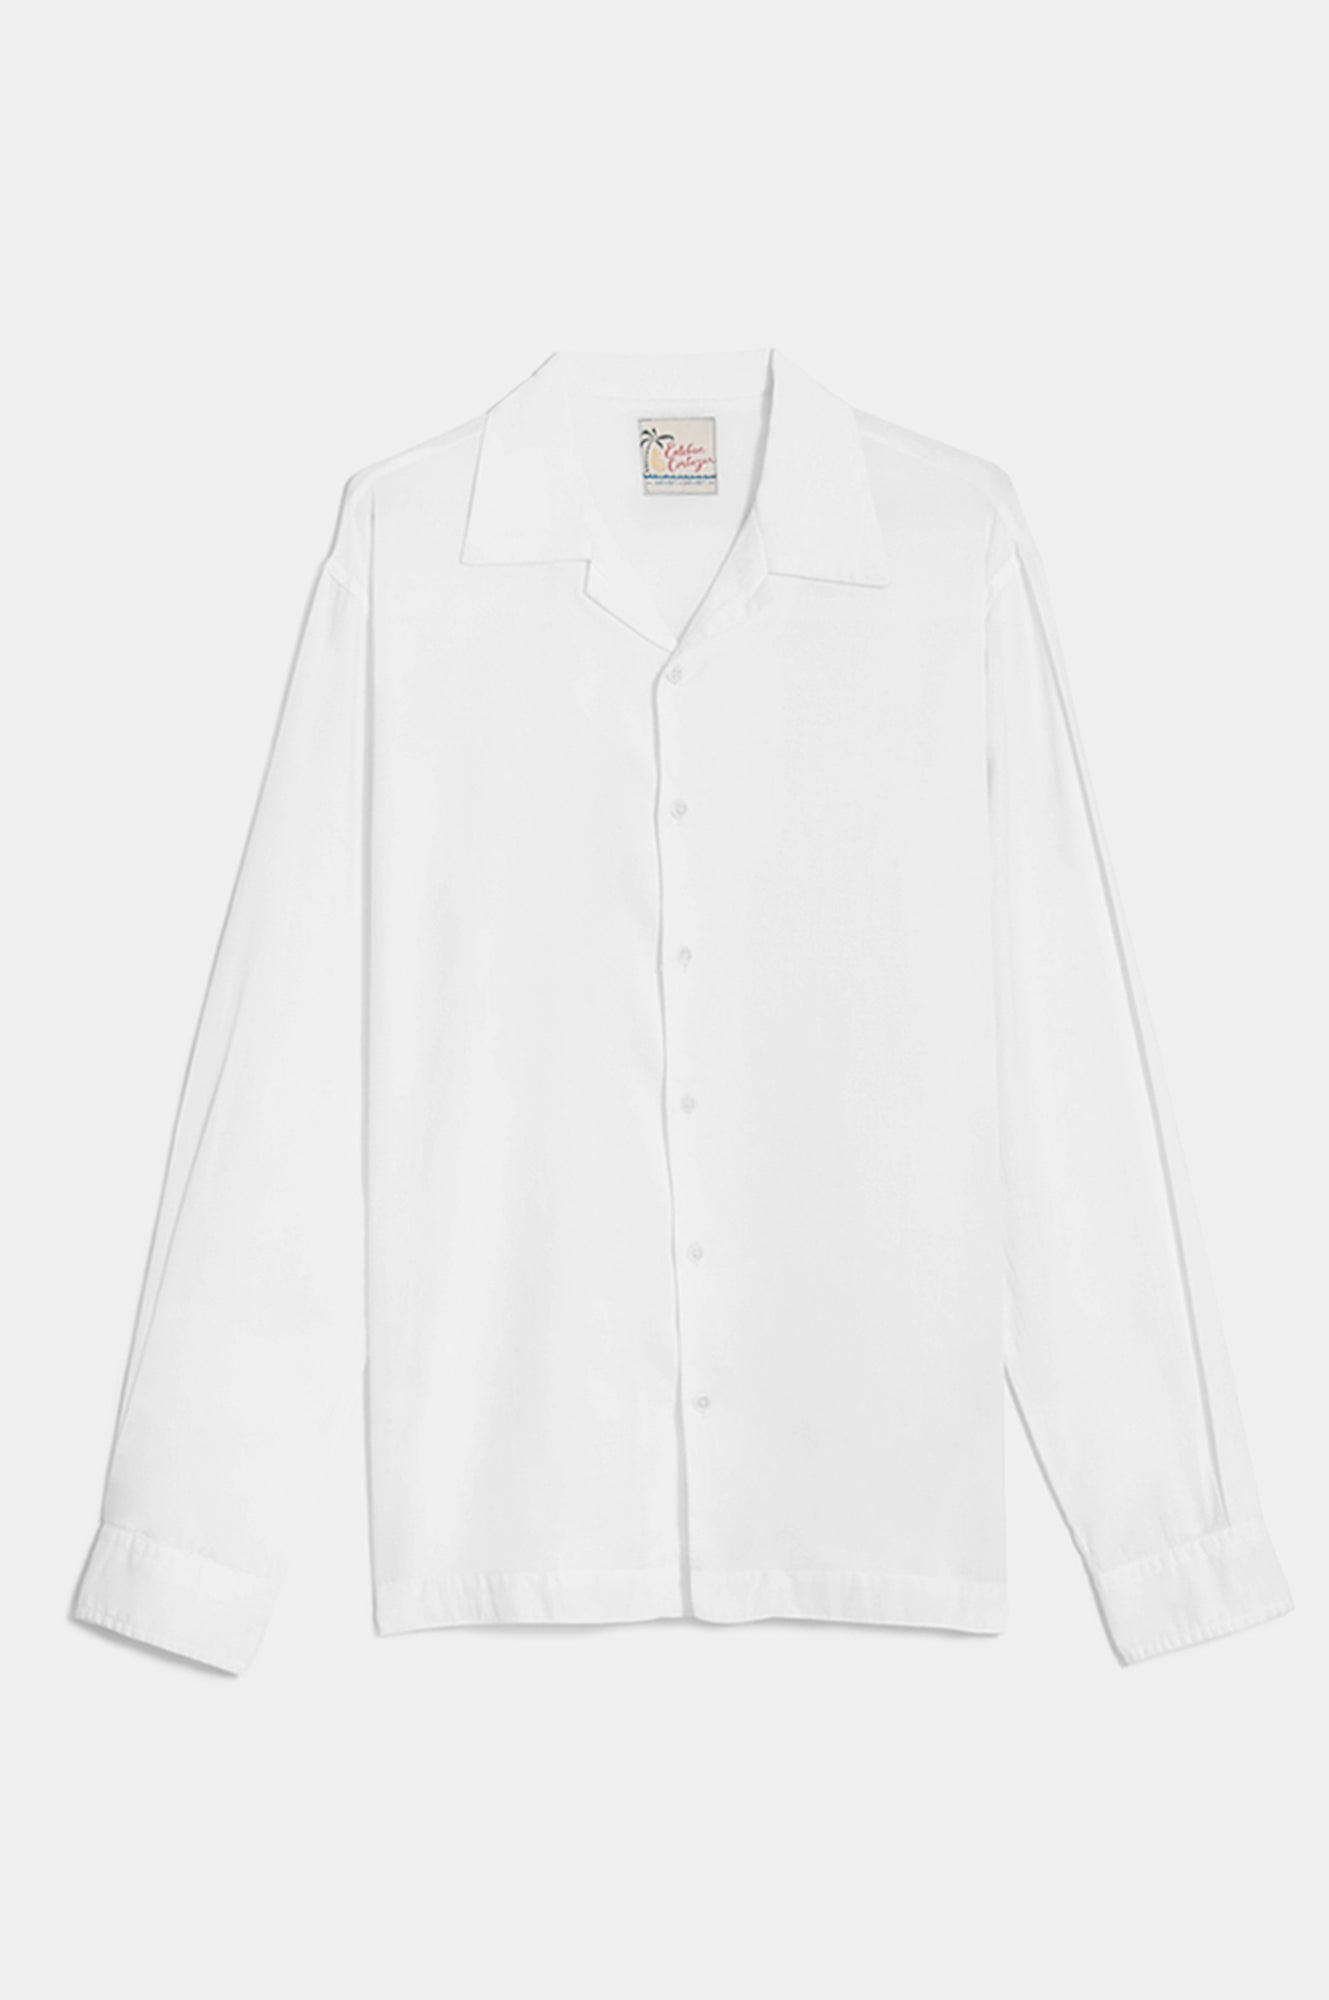 LONG SLEEVES SHIRT - Esteban Cortazar